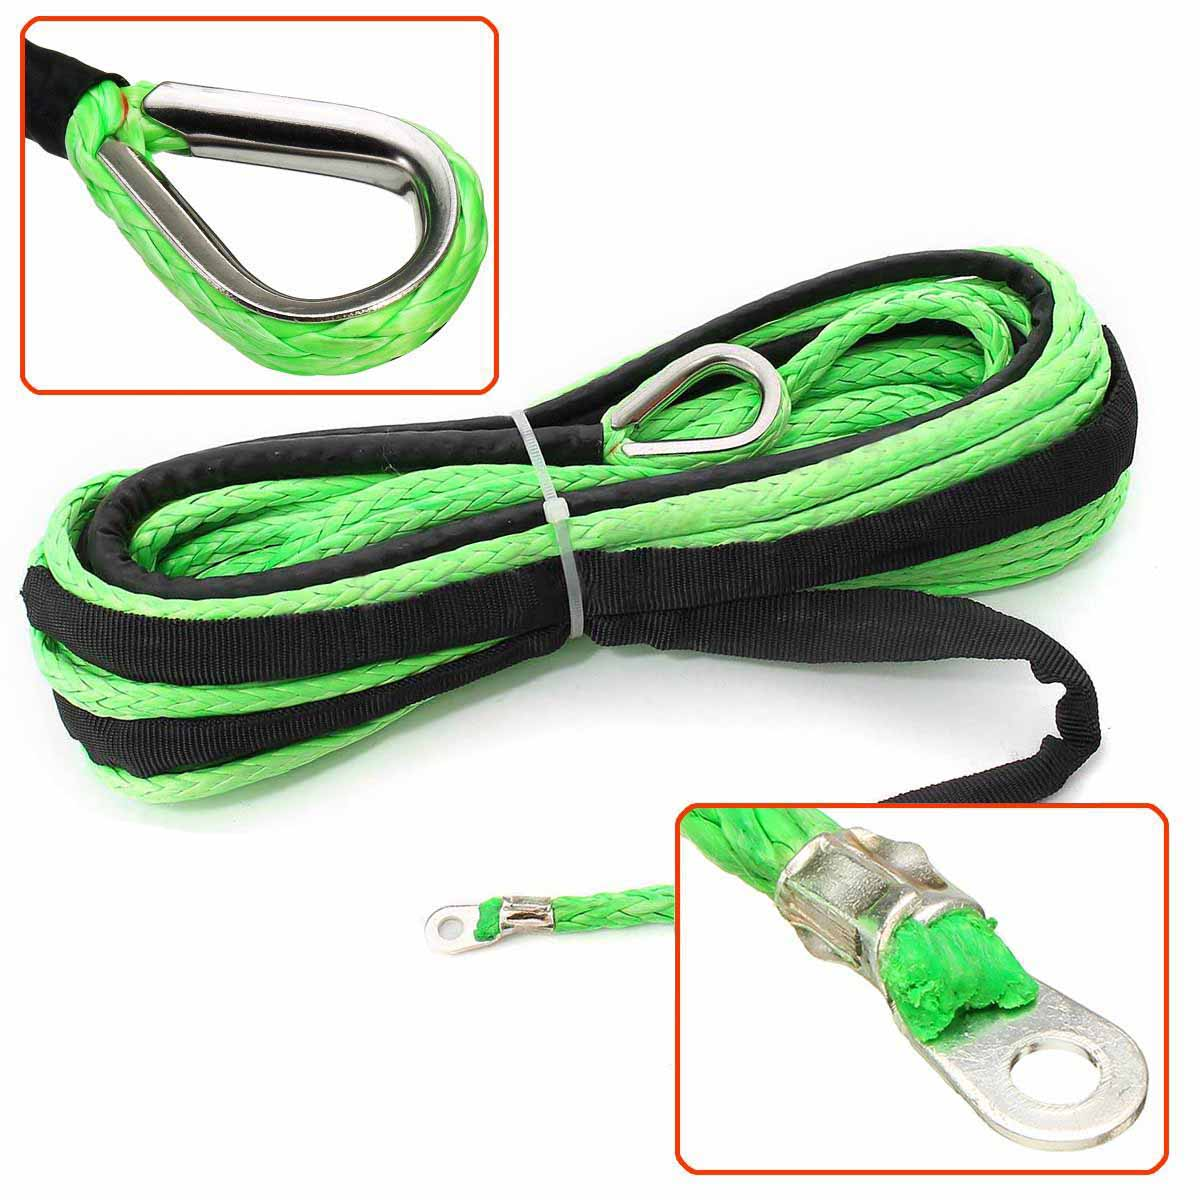 Durable 4.8MM*15M 5500lbs Green Synthetic Winch Rope Cable Line With Hook for ATV UTV Off-Road